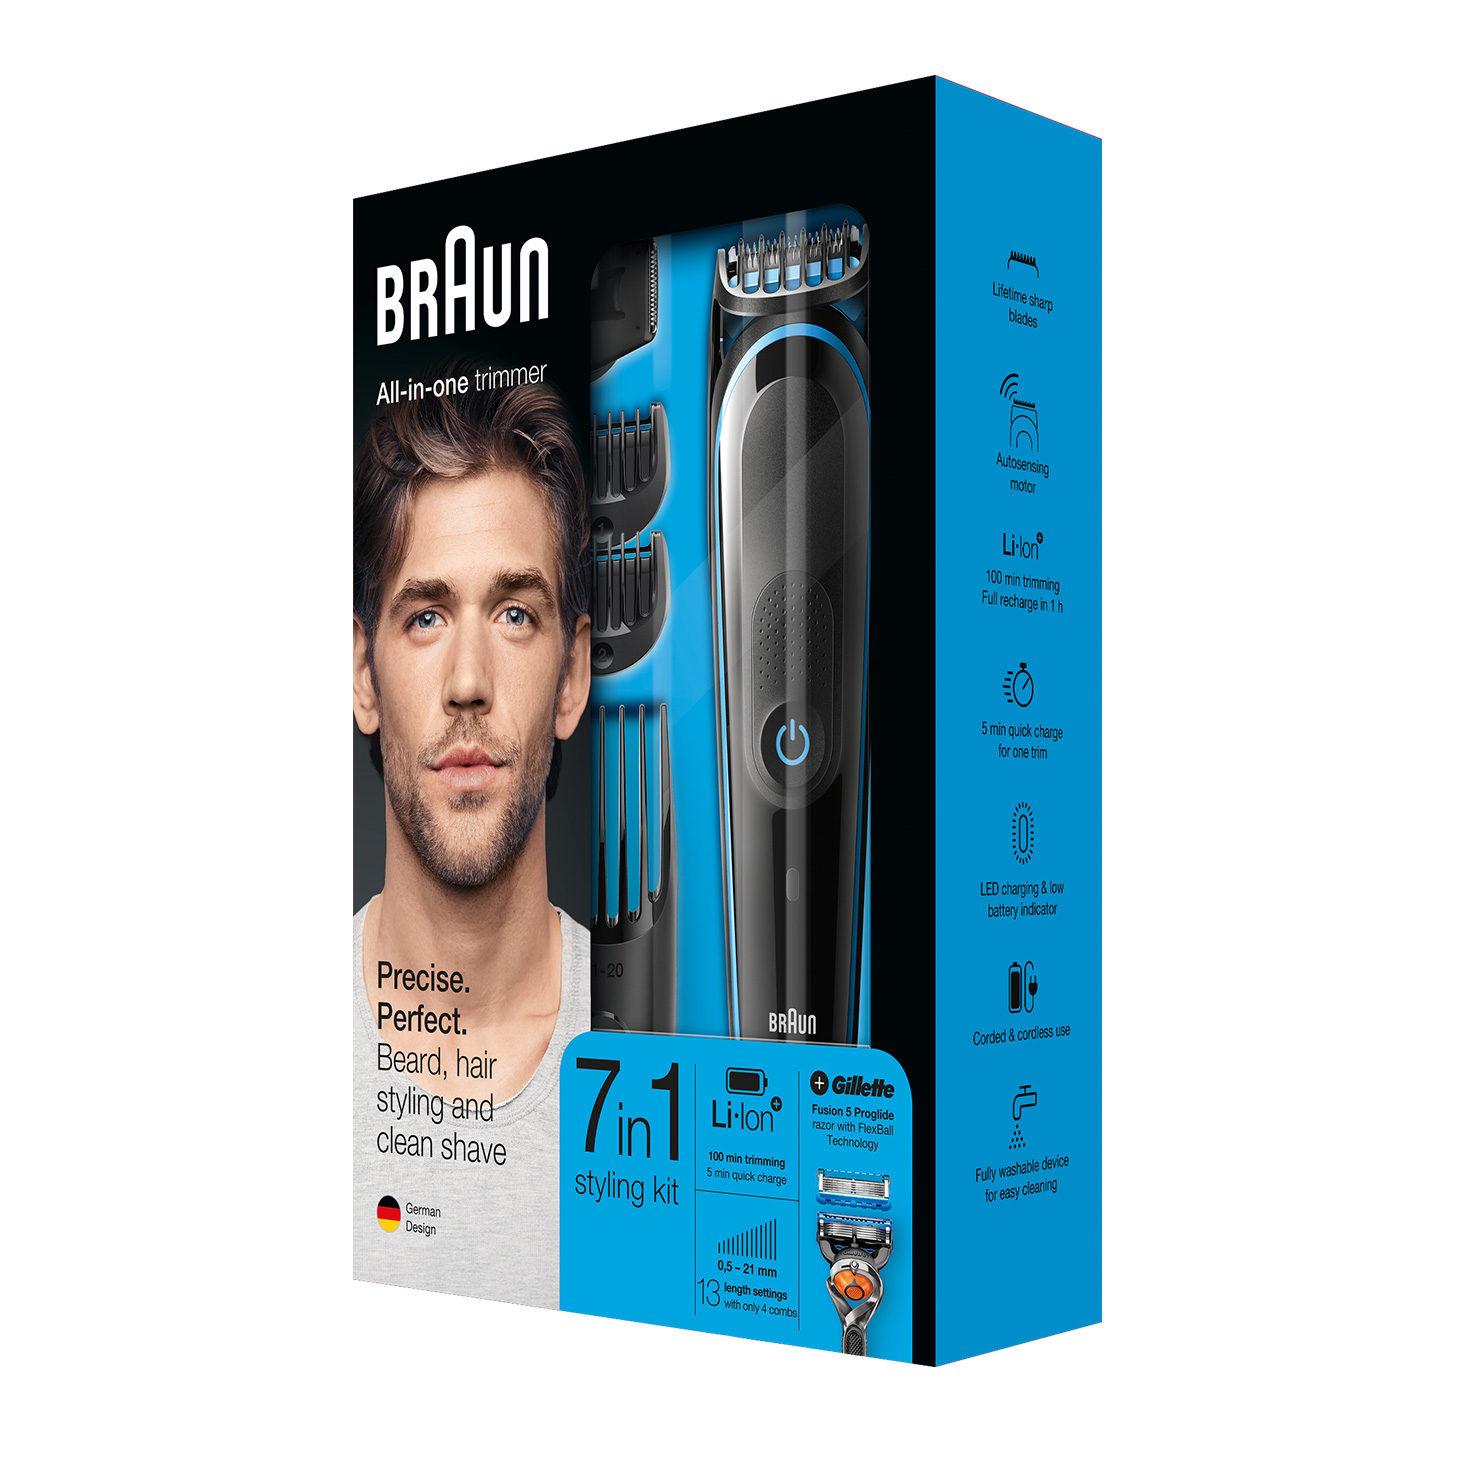 Braun All-in-one trimmer MGK5045 - Packaging